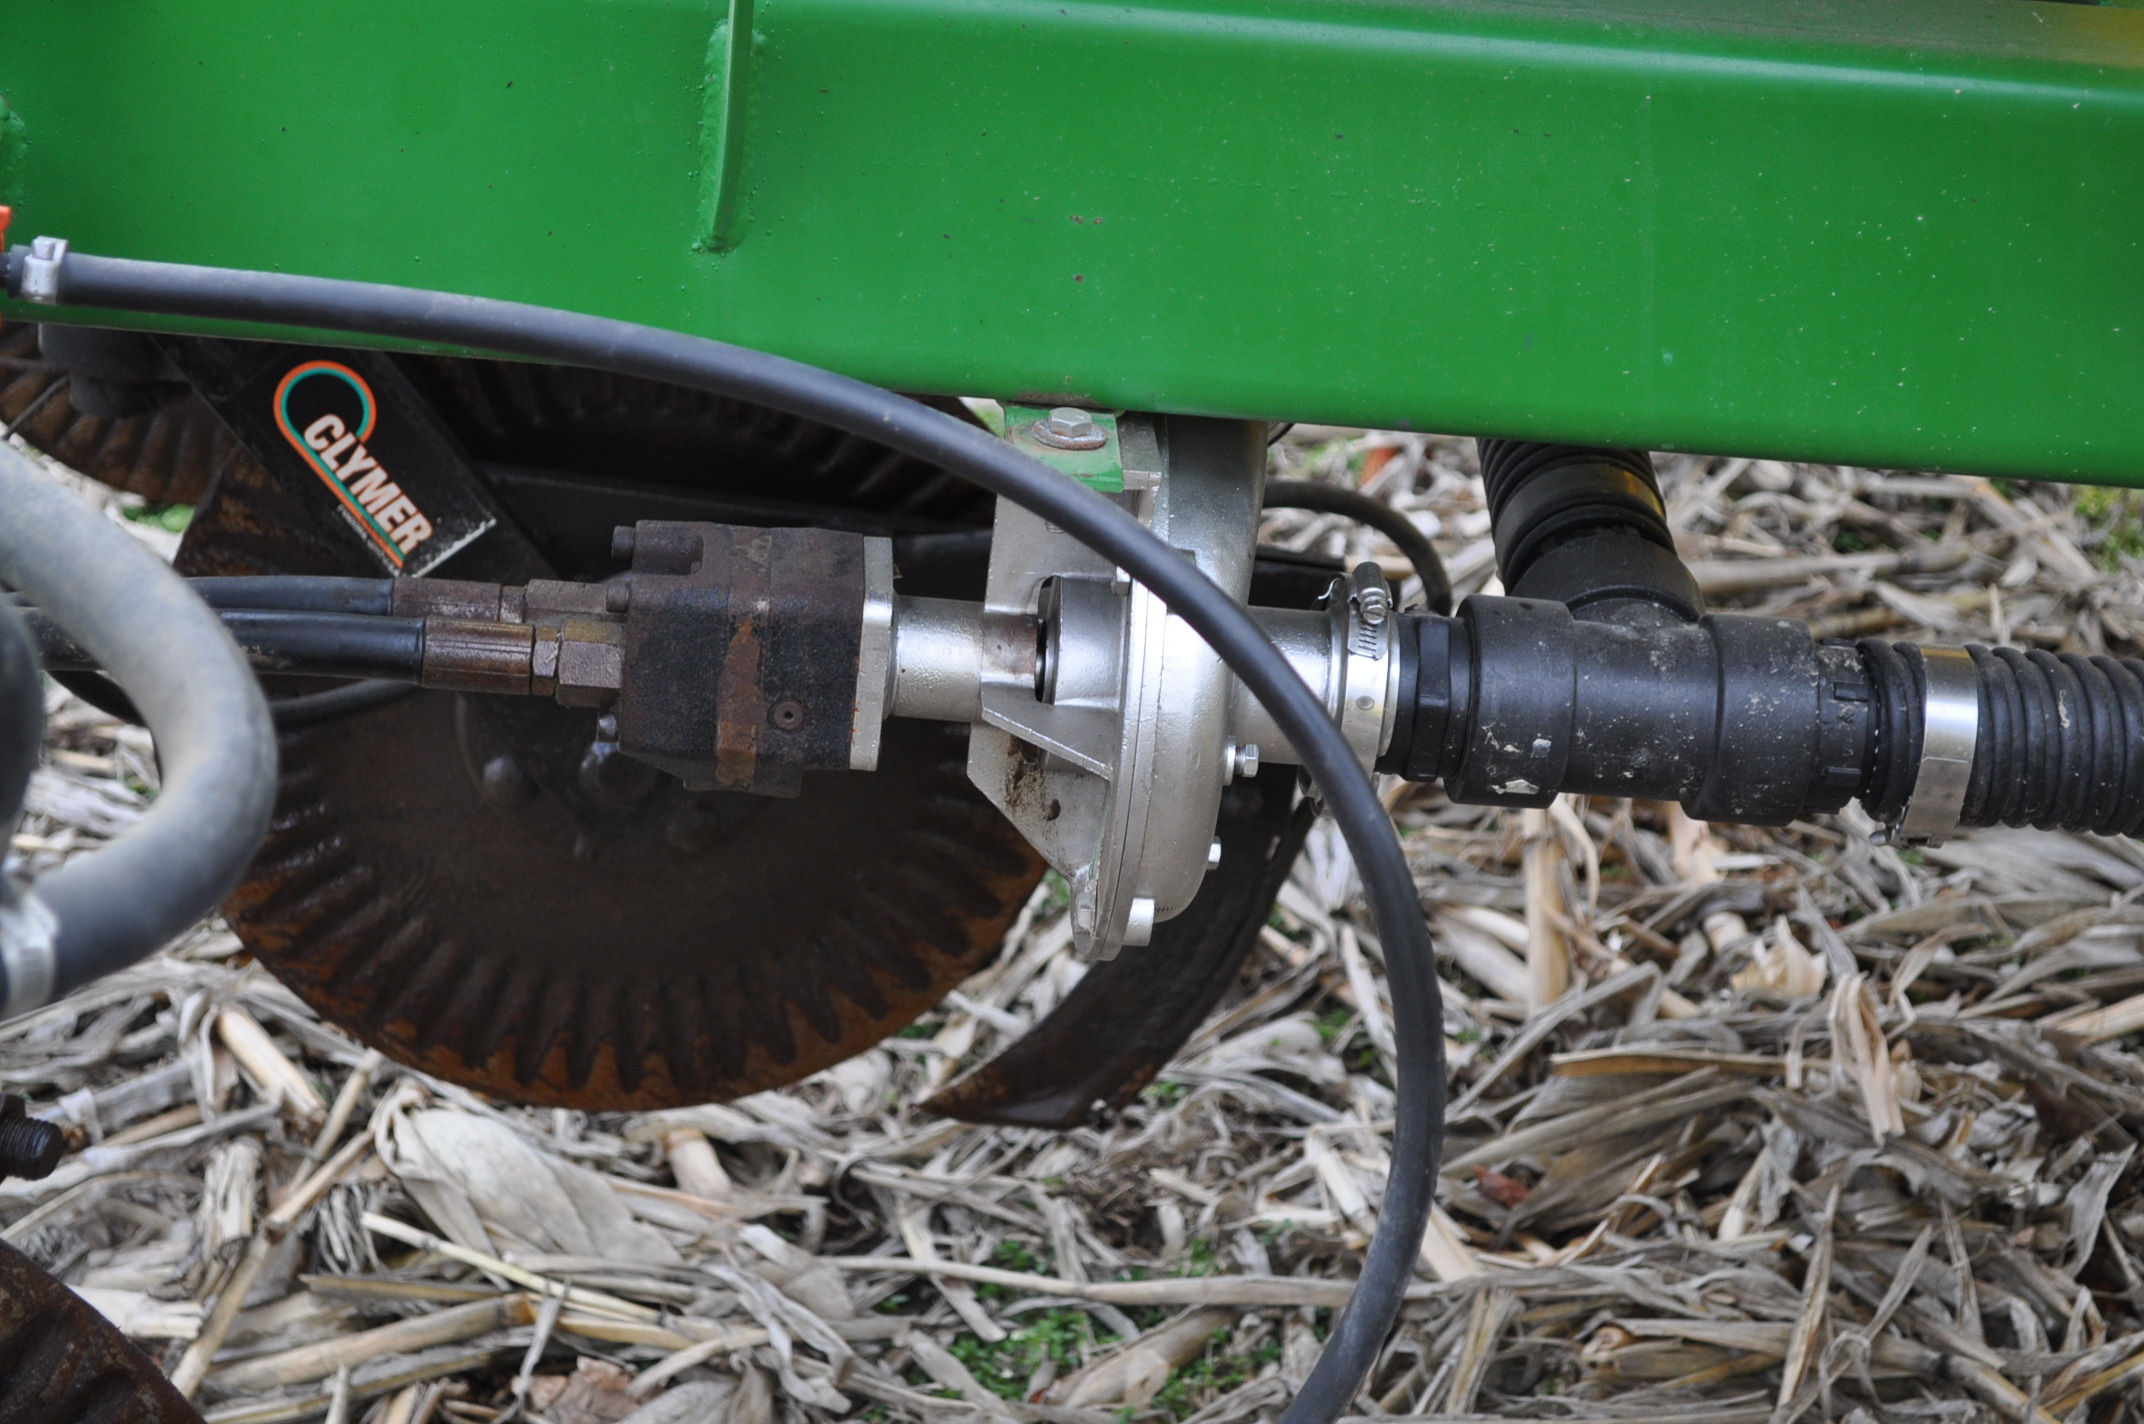 Spray King 28% applicator, 11 coulters w/ knives, 850 poly tank, SS hyd pump, spot spray nozzles - Image 11 of 15